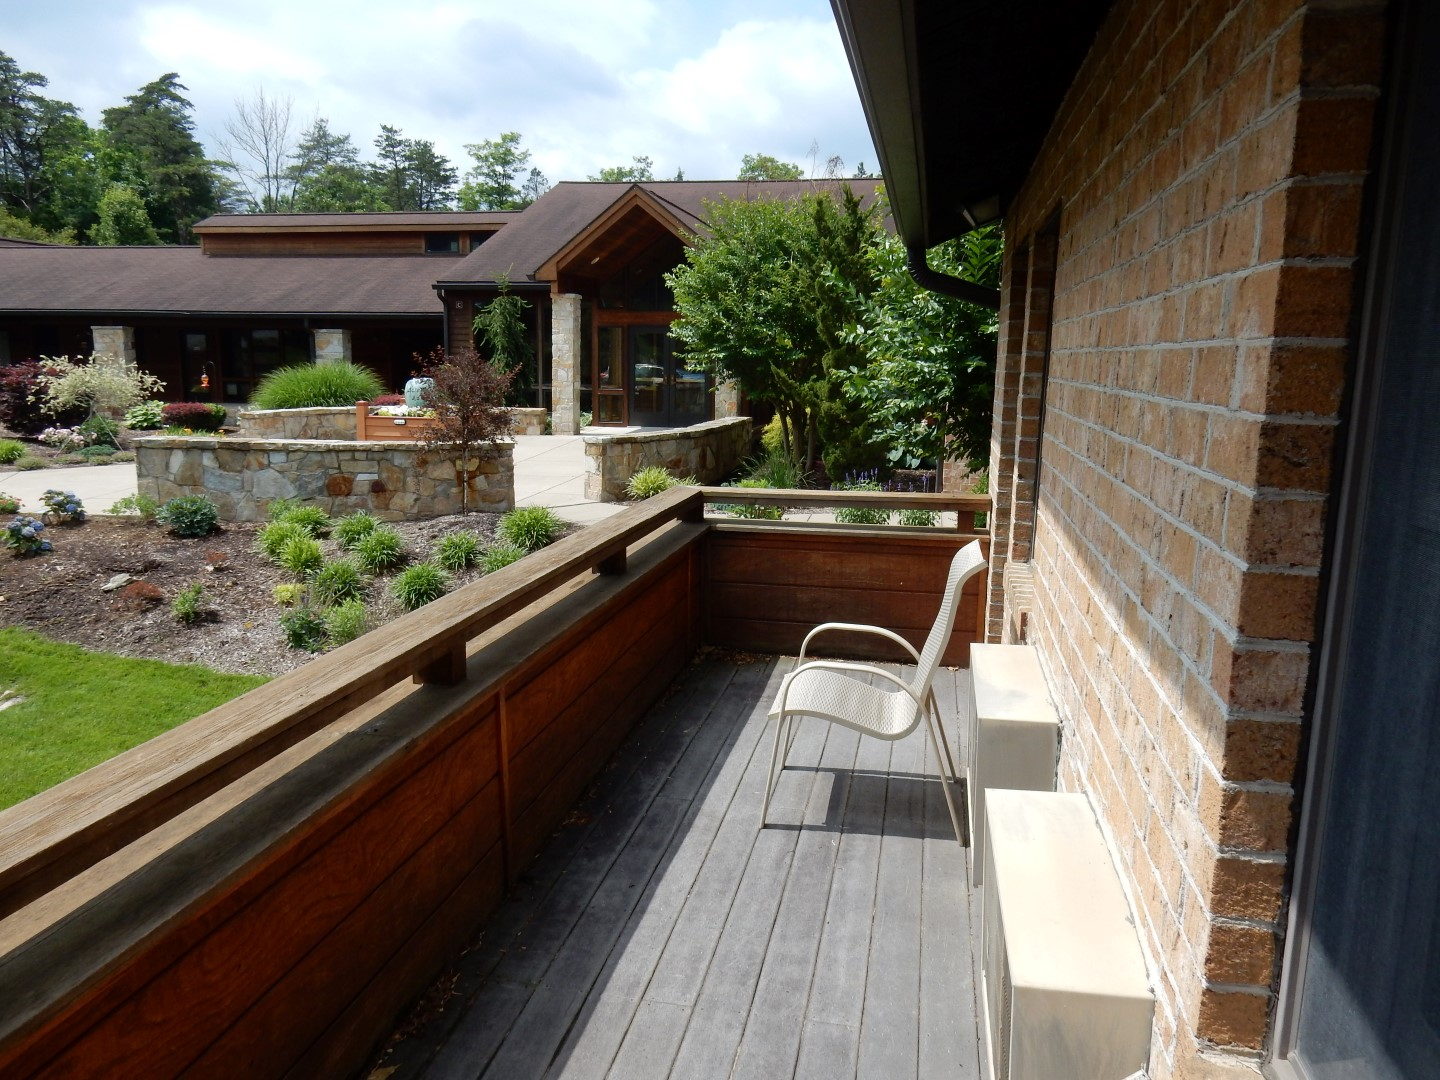 Each room has its own balcony and there are many places on the property (including walking trails) for quiet reflection.